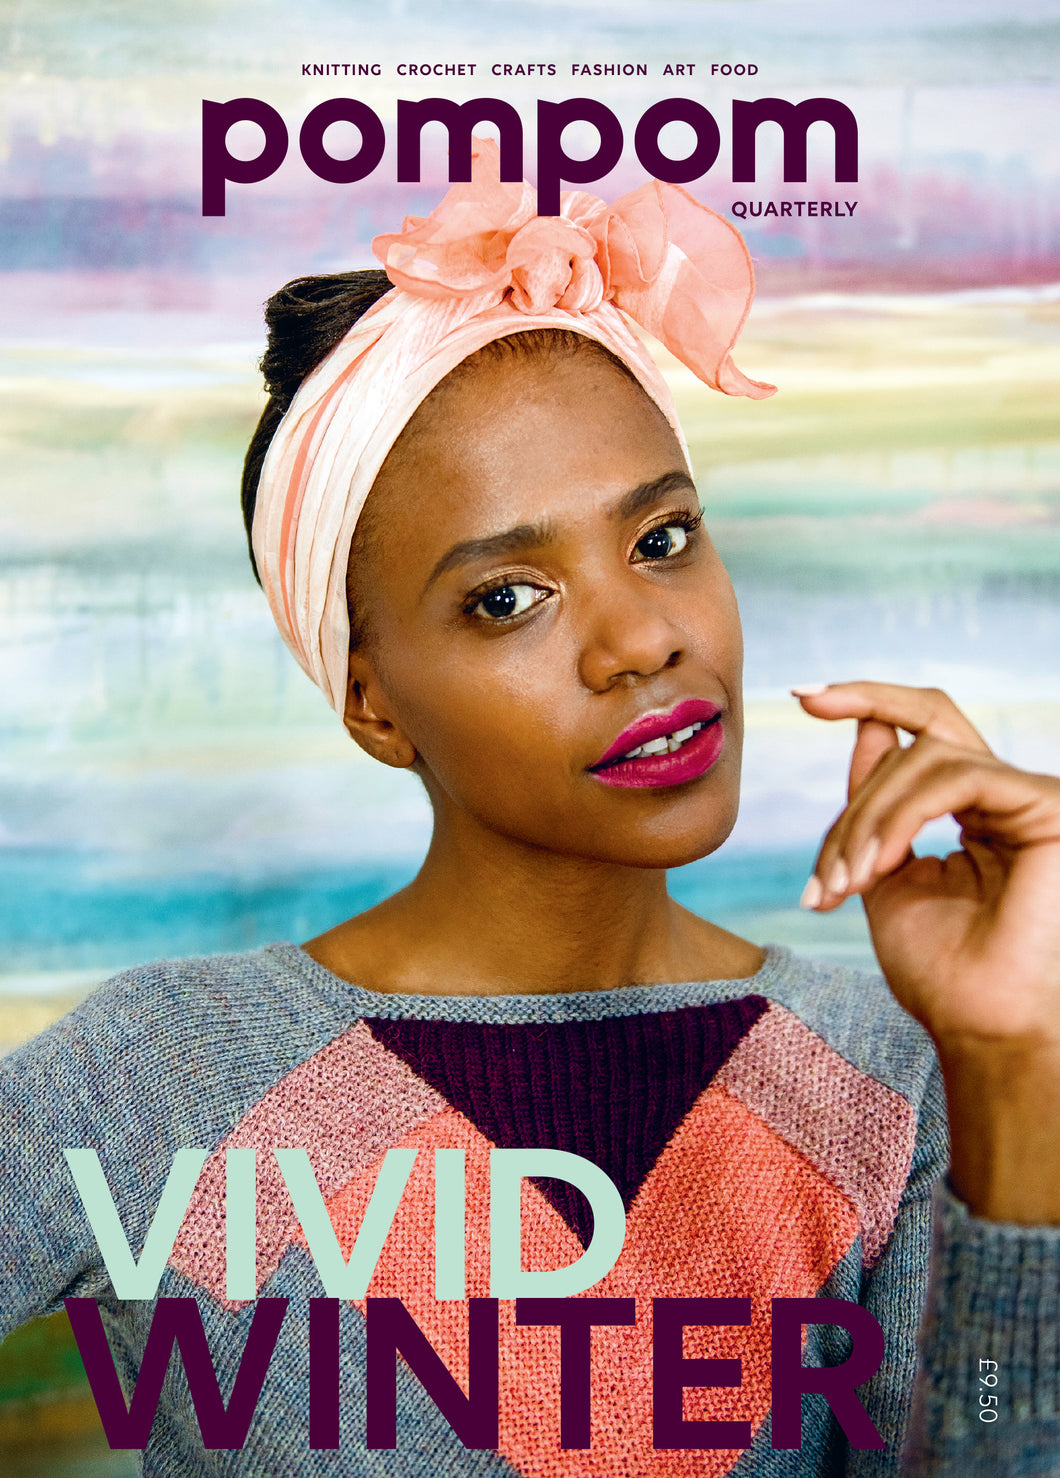 Pom Pom Vivid Winter 2017 Issue 23